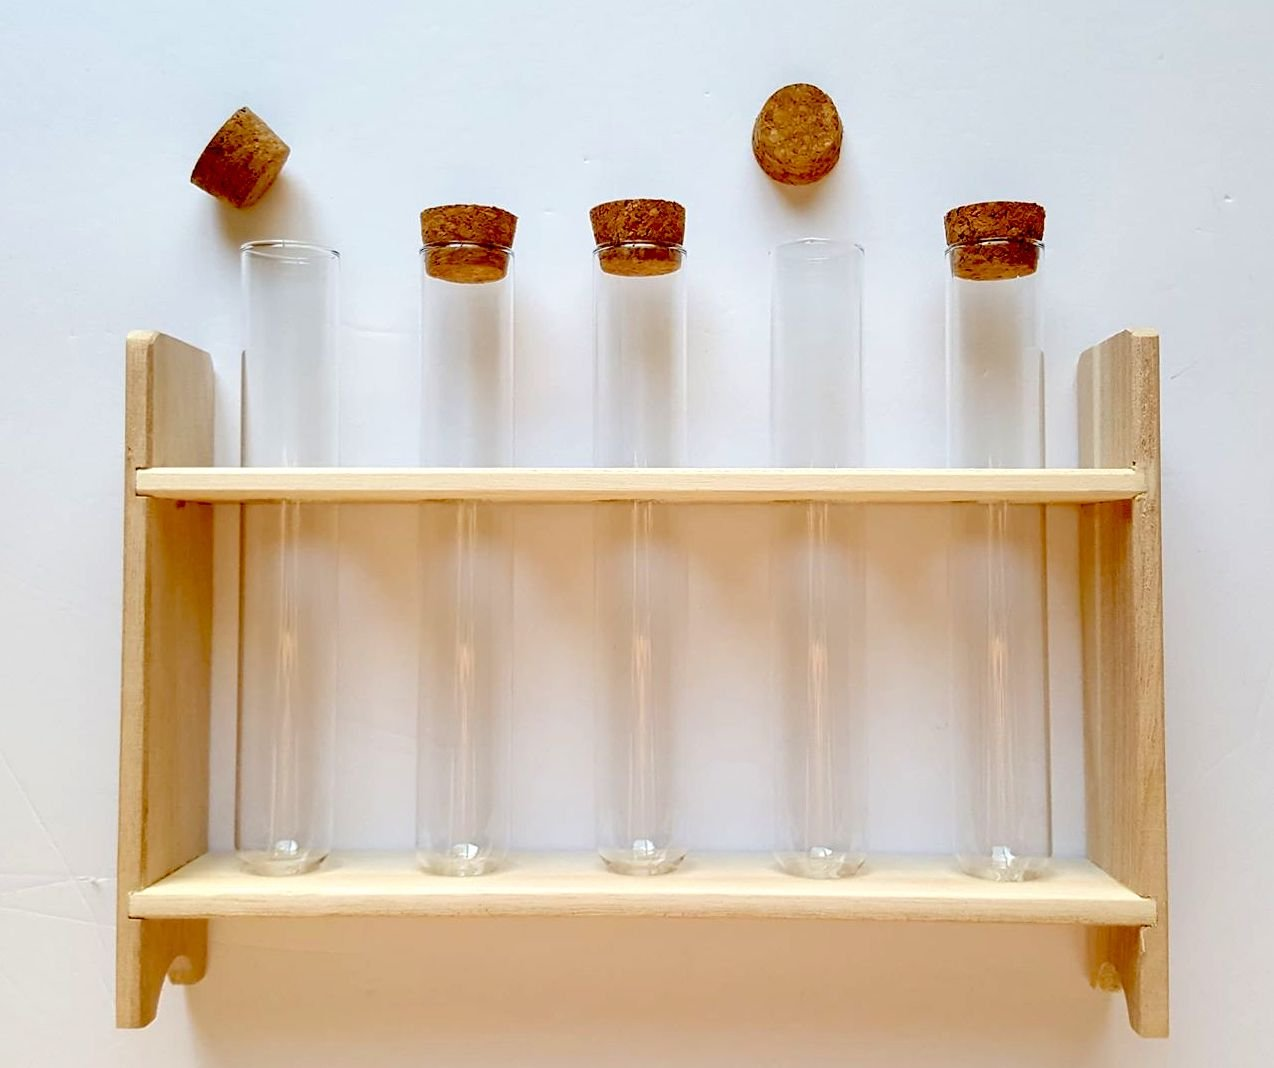 Glass Test Tubes with Corks and Stand